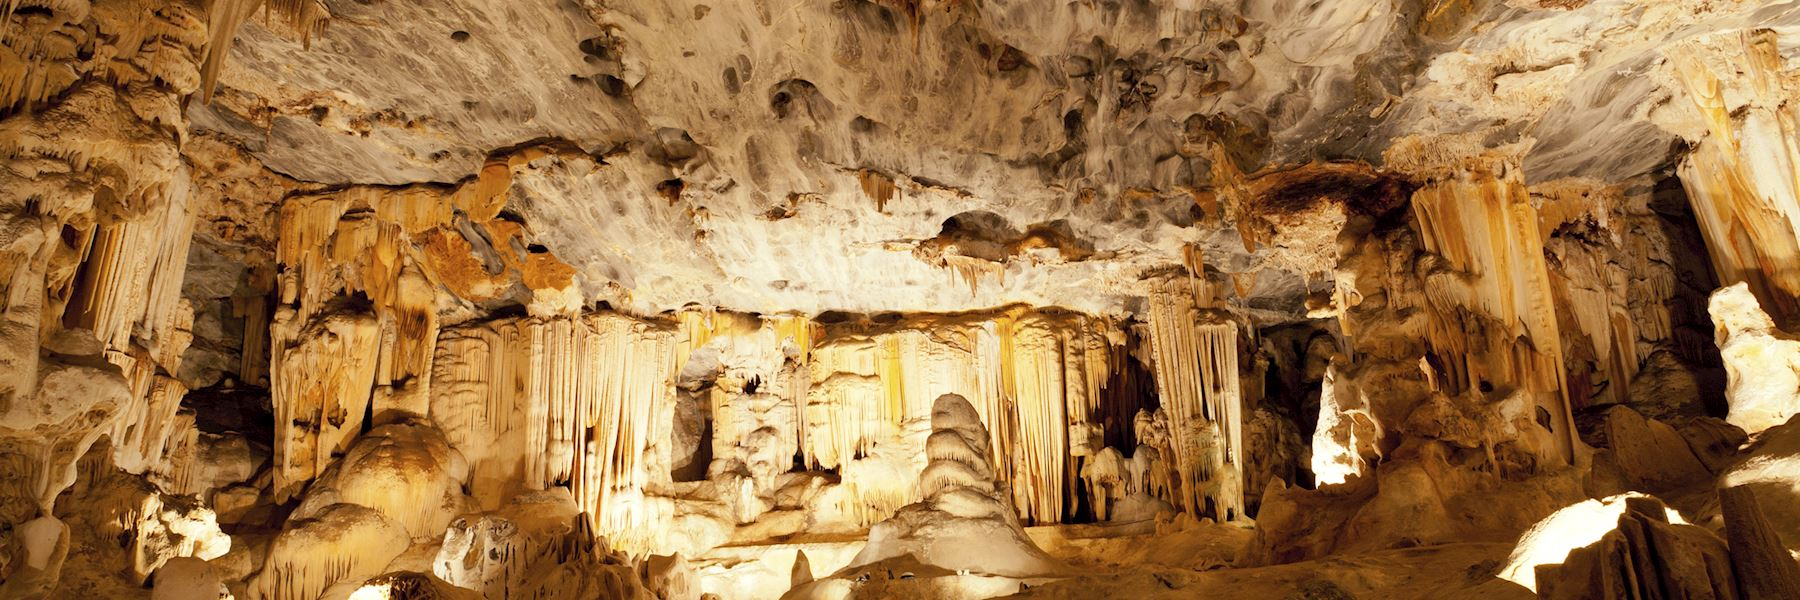 Visit the Cango Caves & Swartberg Pass, South Africa